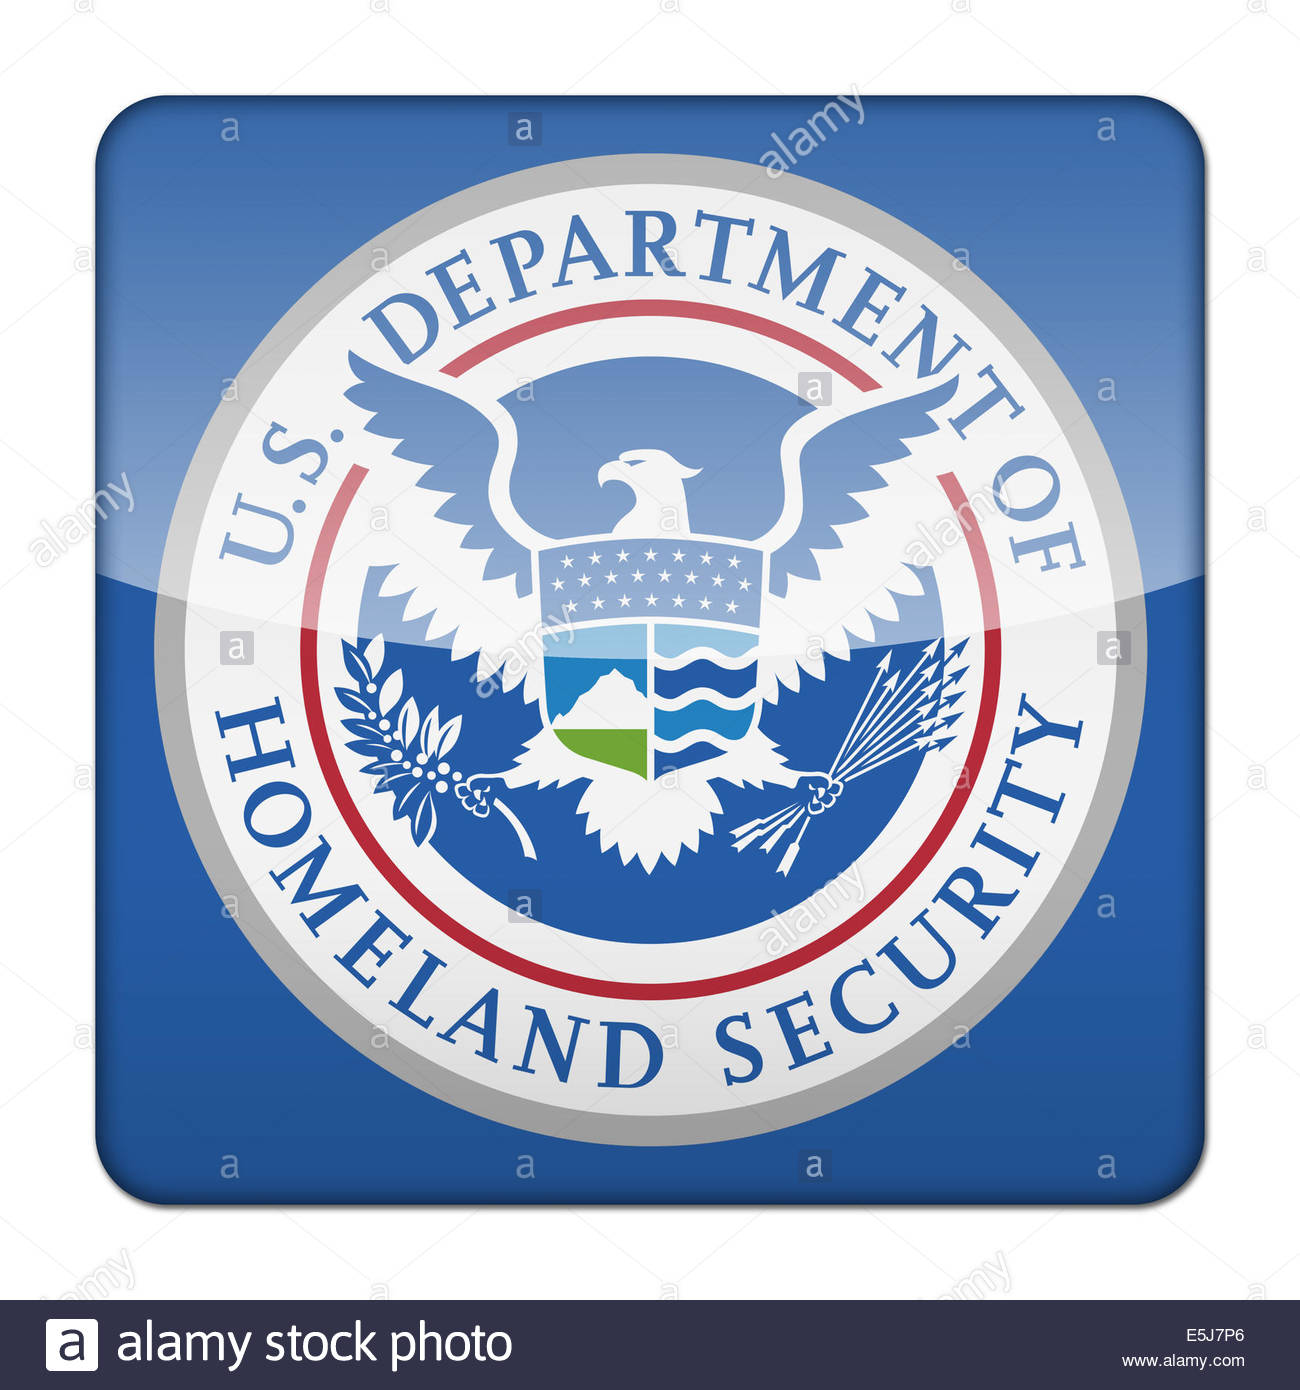 United States Department of Homeland Security logo icon isolated app button Stock Photo